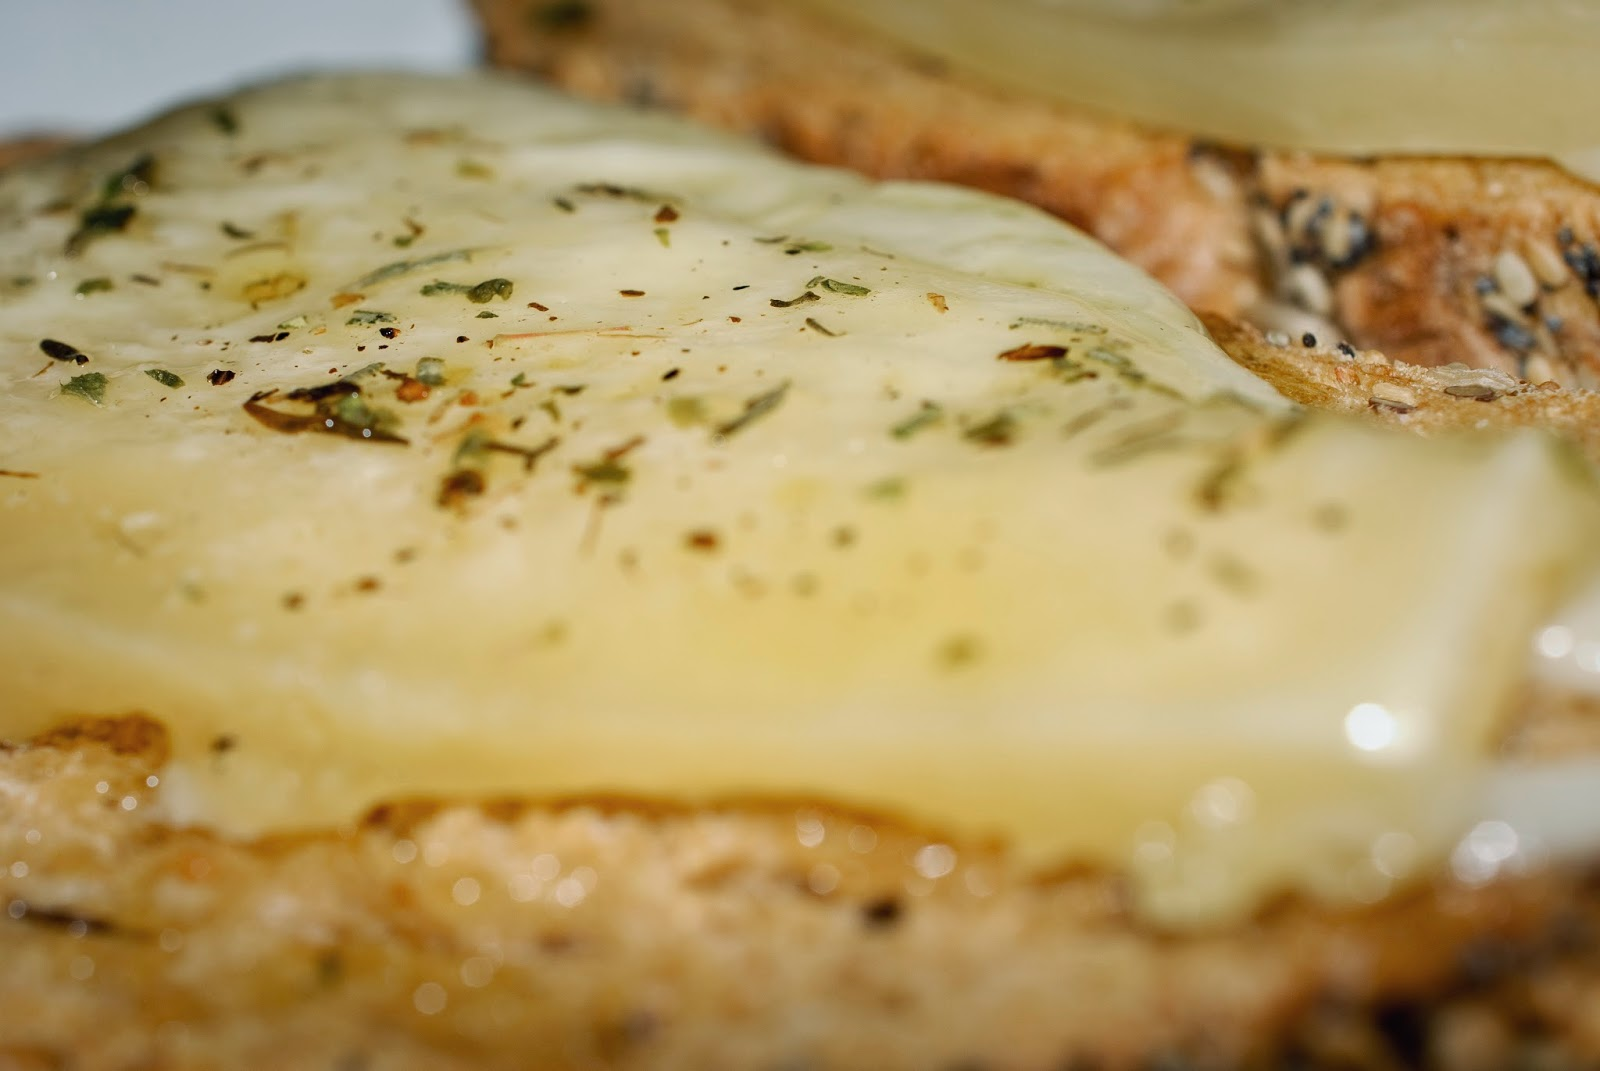 Tosta de queso a la plancha; pan-fried cheese toast